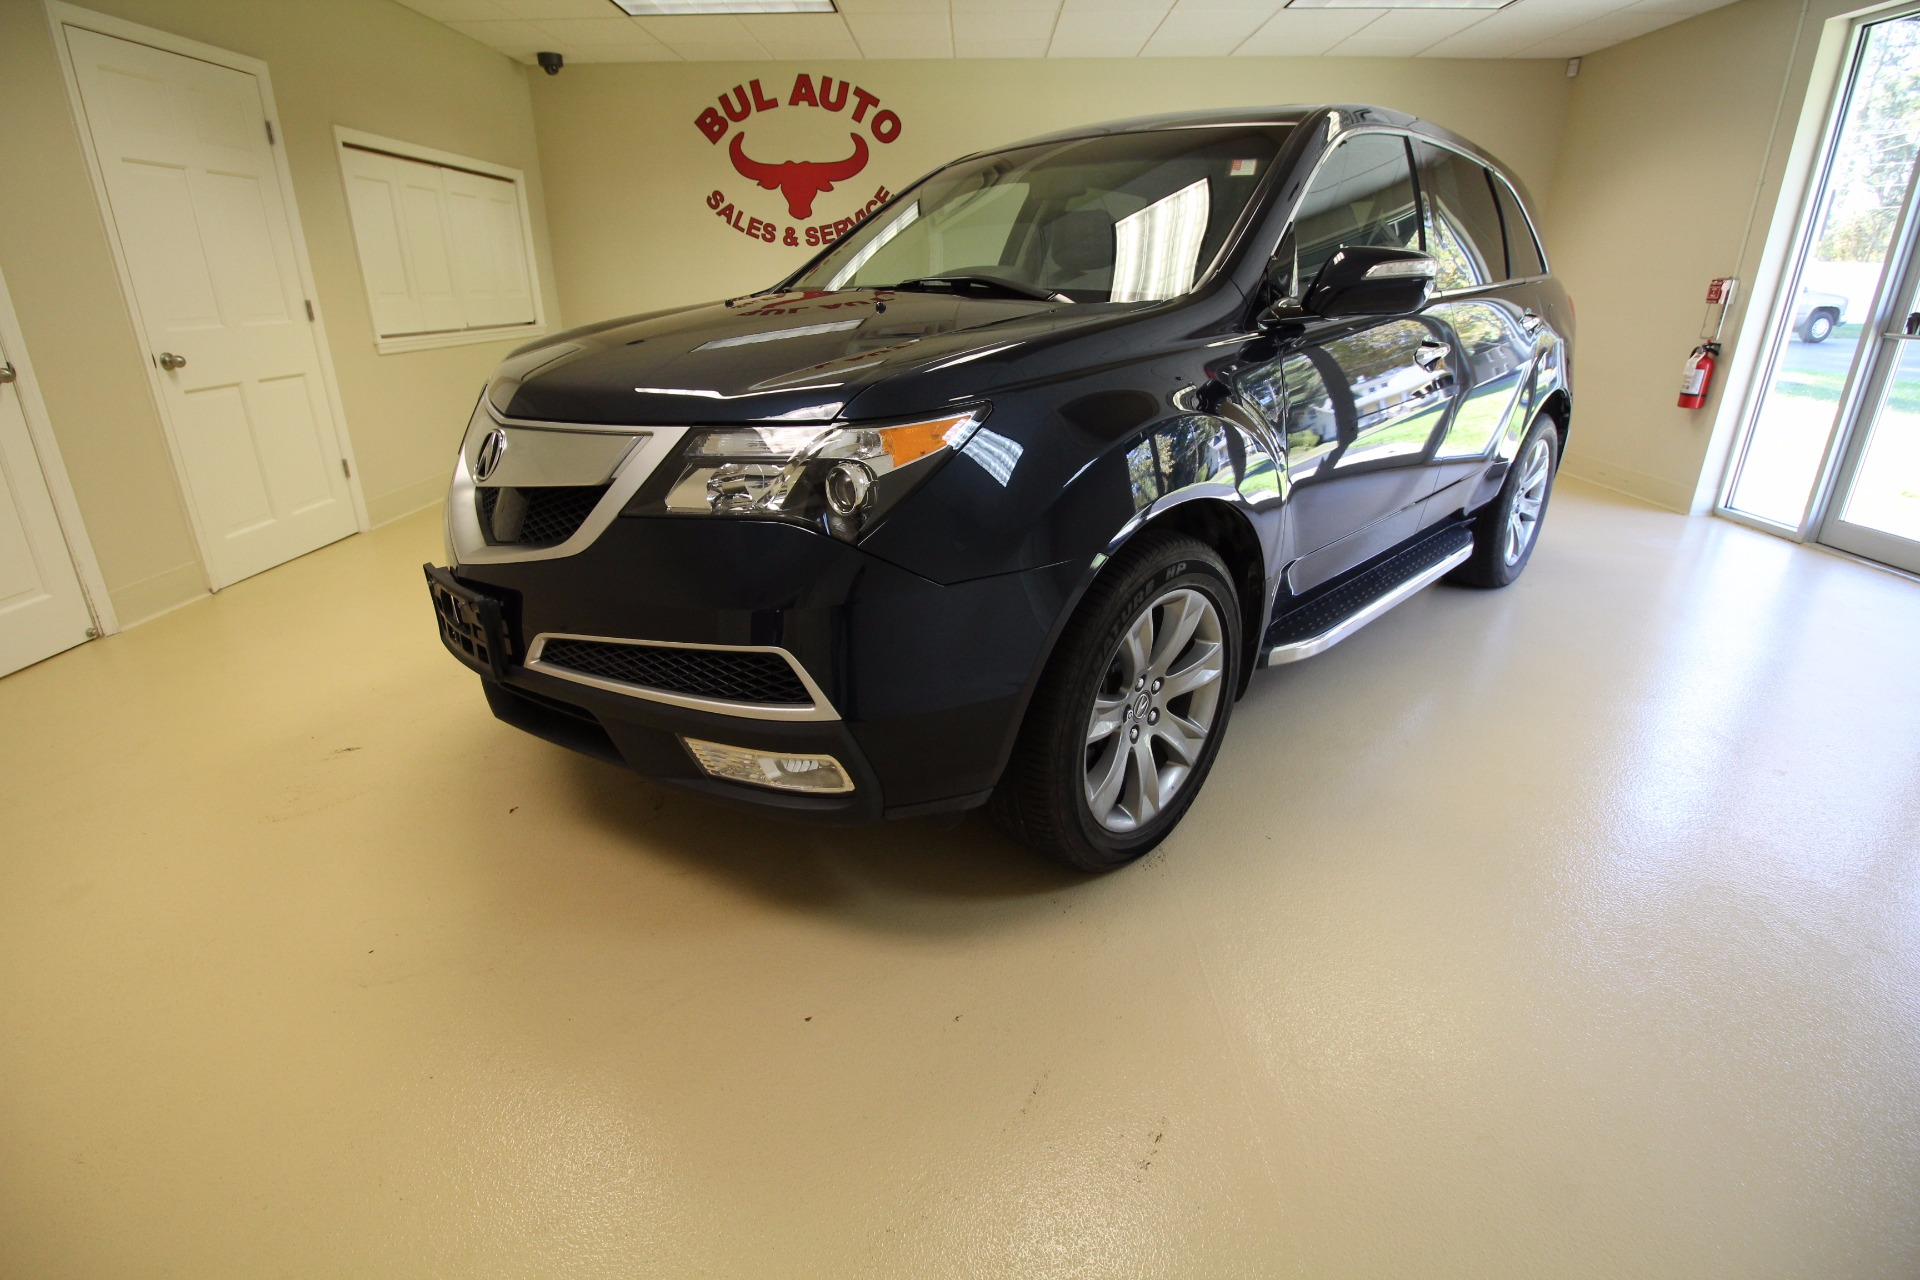 2012 acura mdx 6 spd at w advance package stock 17183. Black Bedroom Furniture Sets. Home Design Ideas